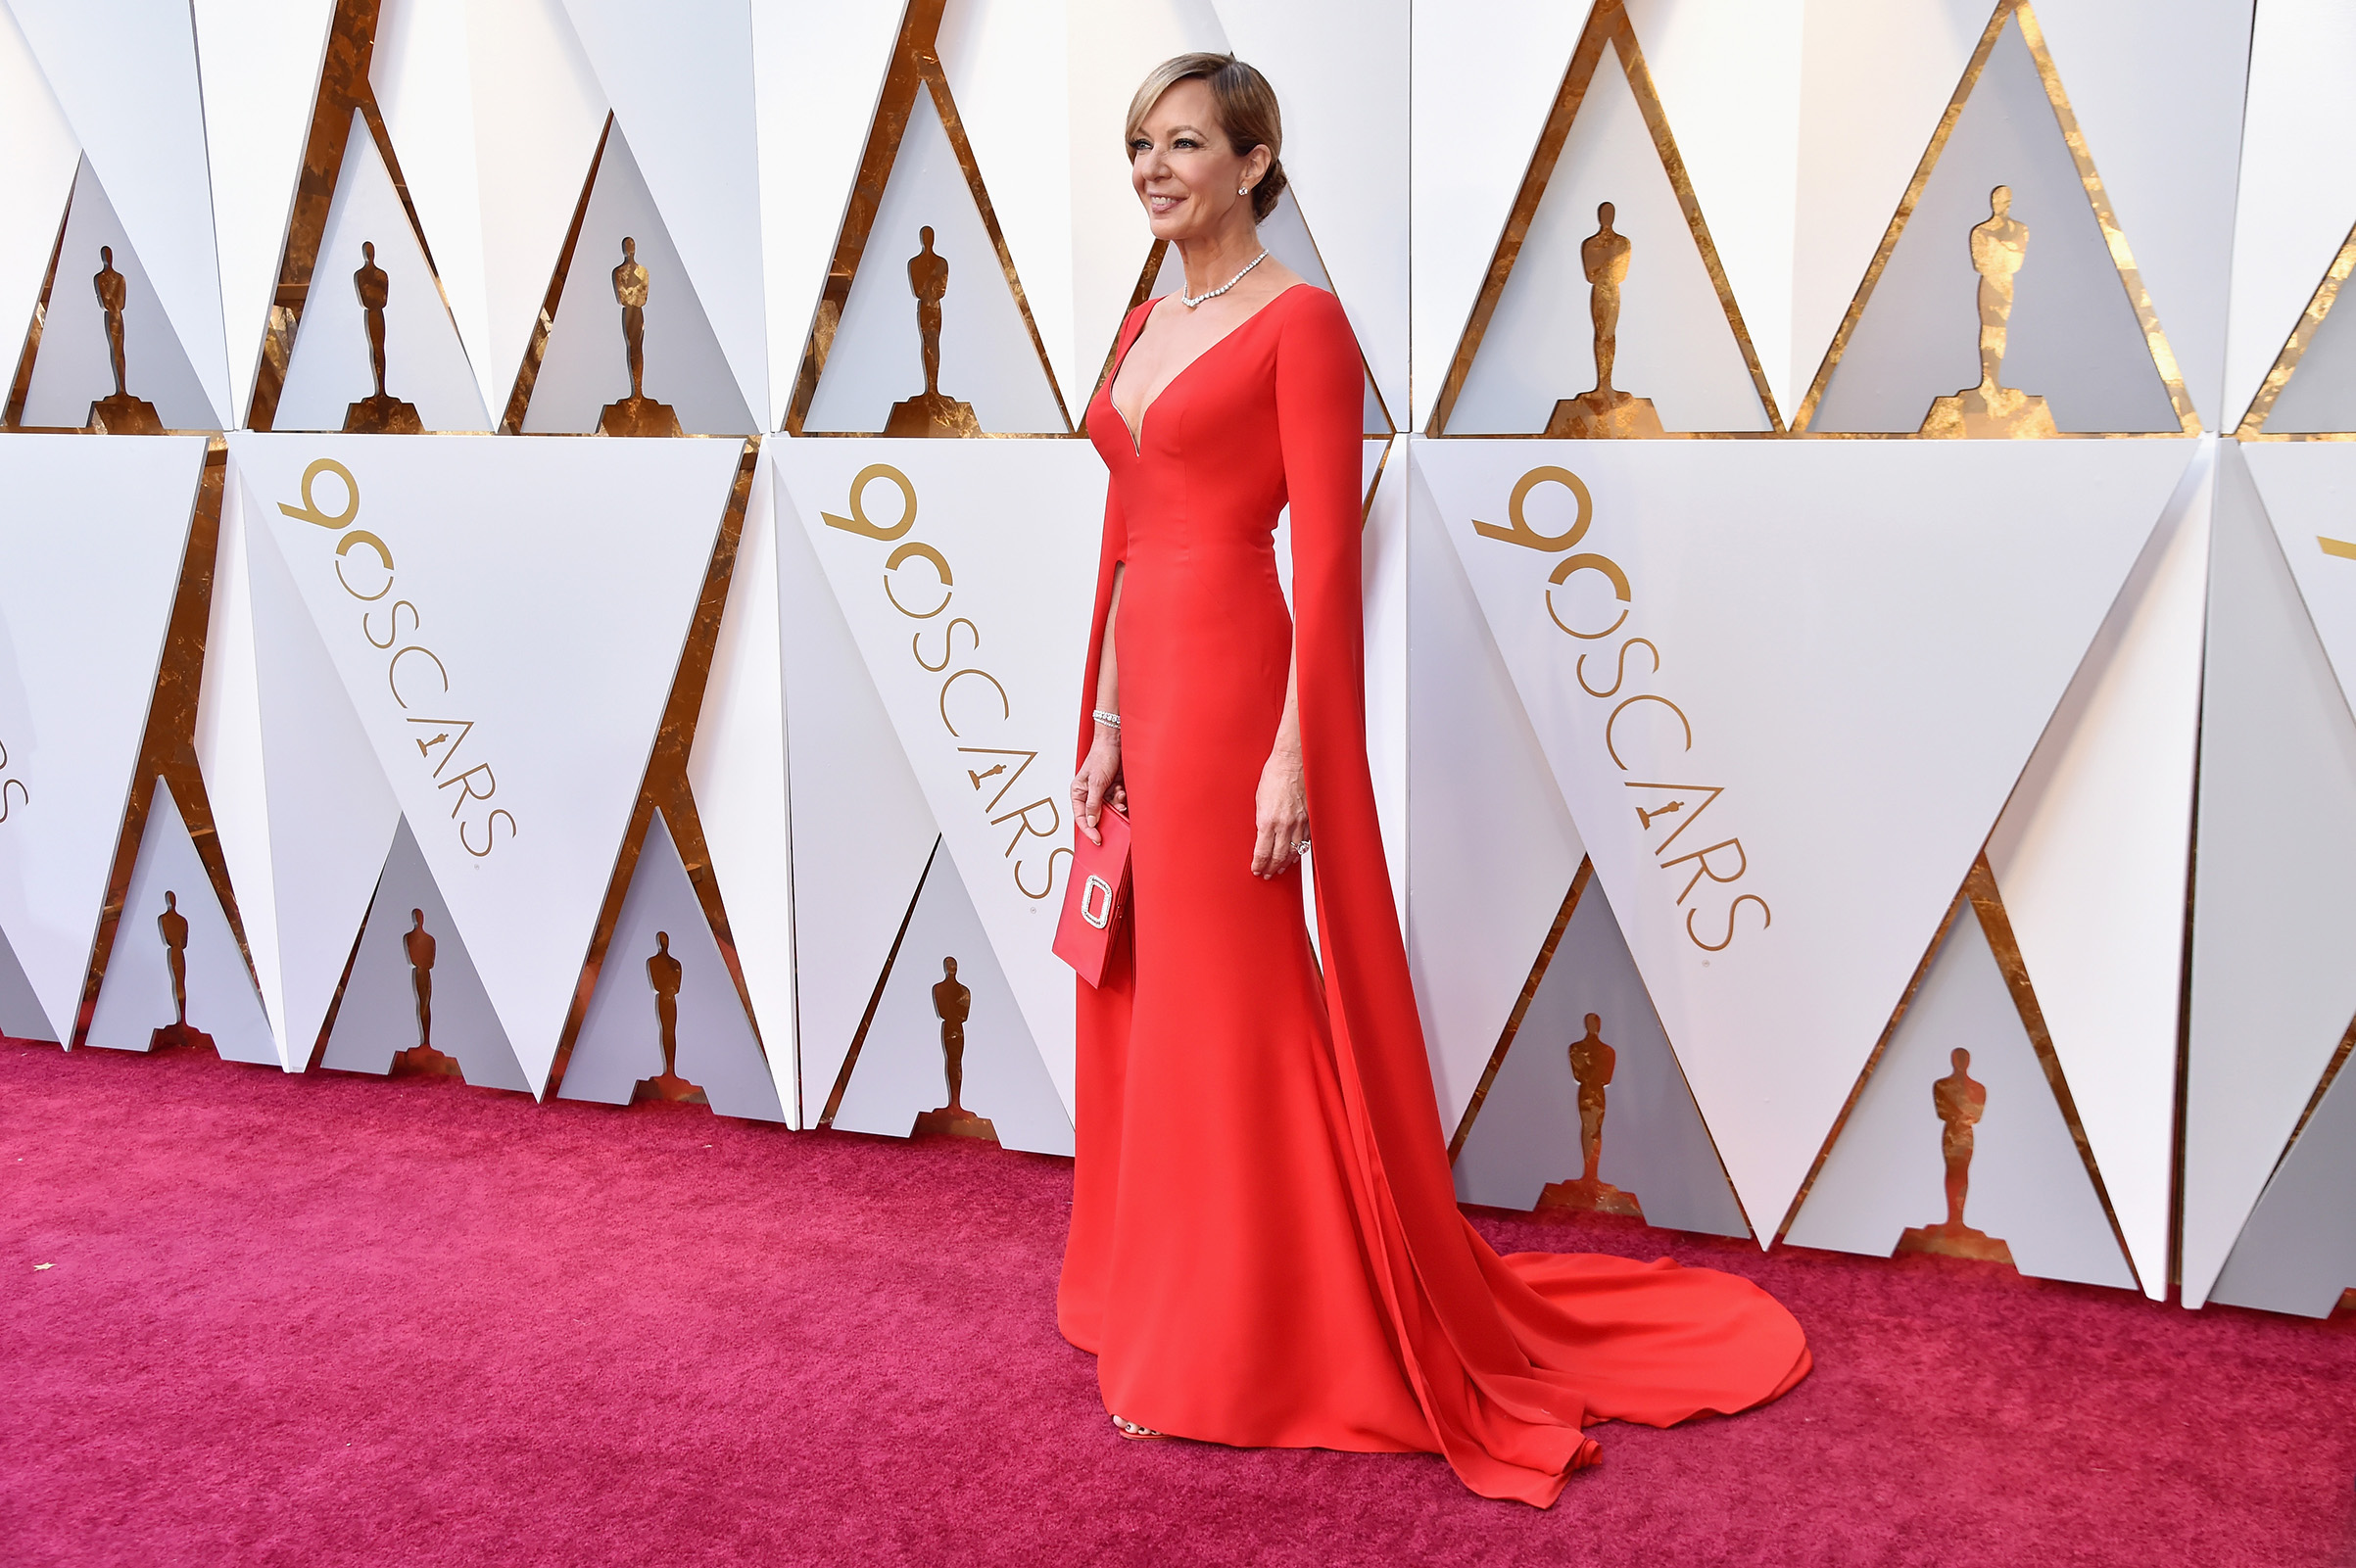 Allison Janney attends the 90th Annual Academy Awards in Hollywood, on March 4, 2018.